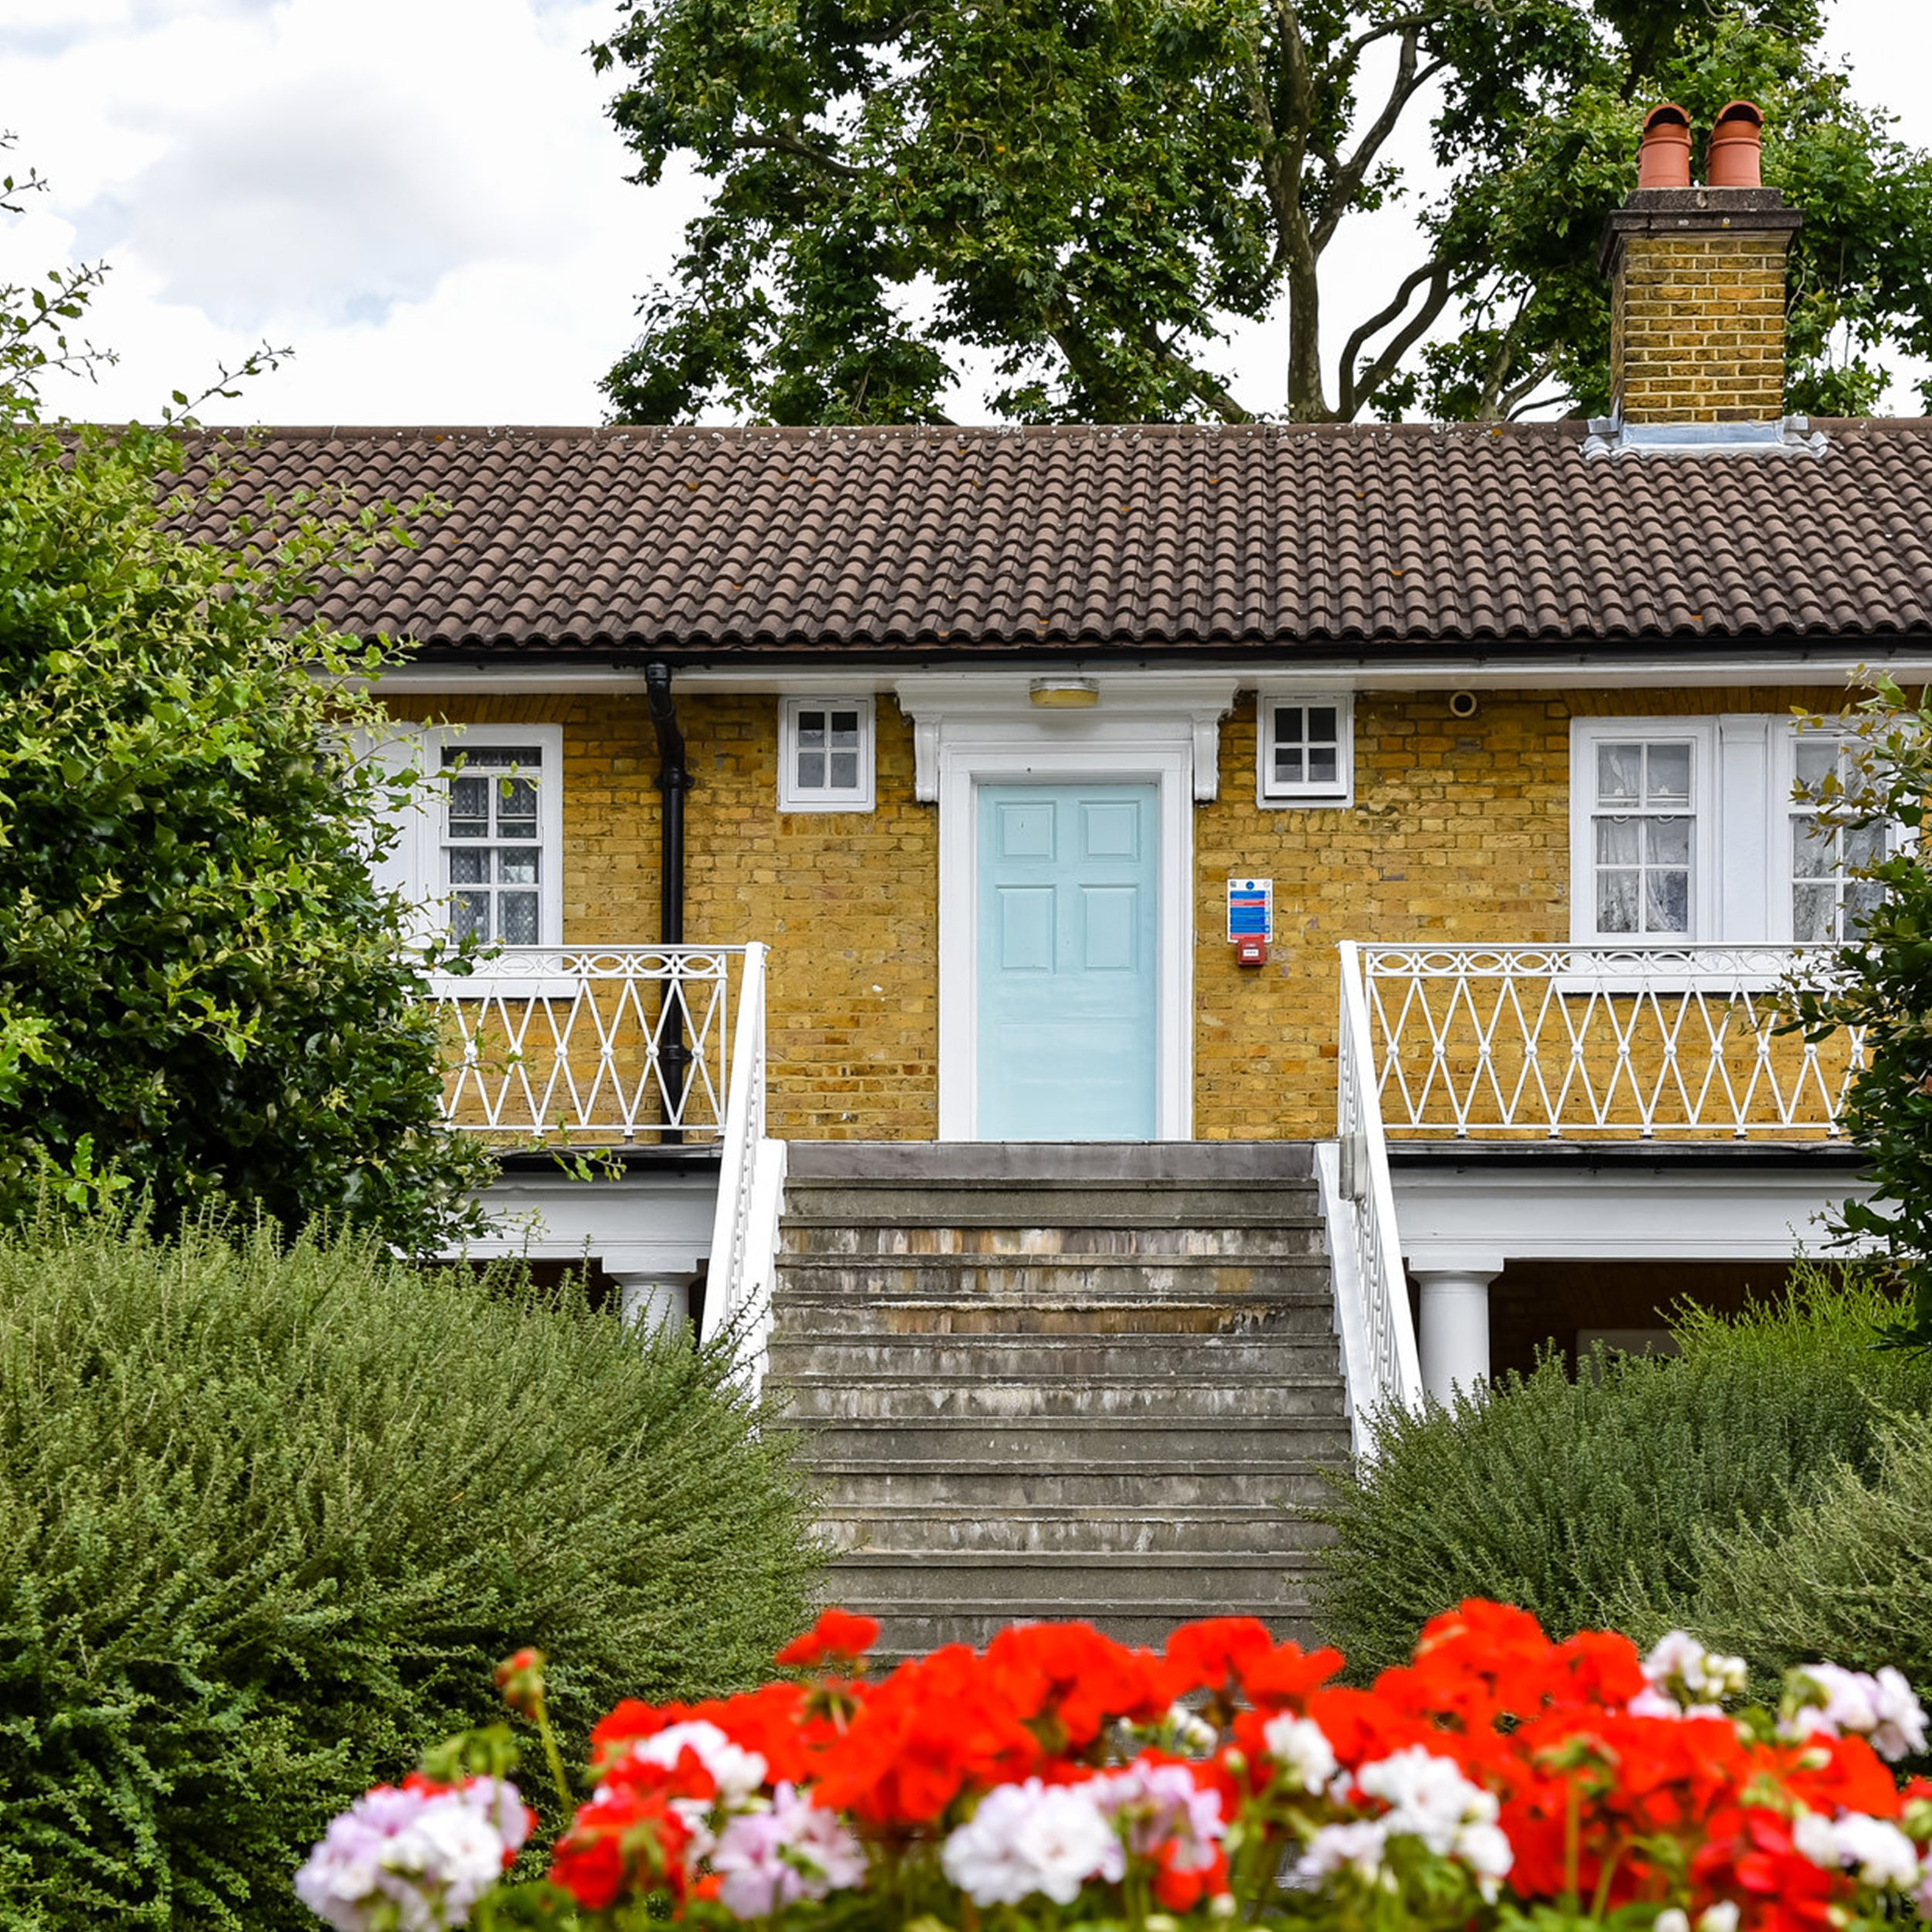 Residential property showing flowers, new painting and decorating and cyclical repairs